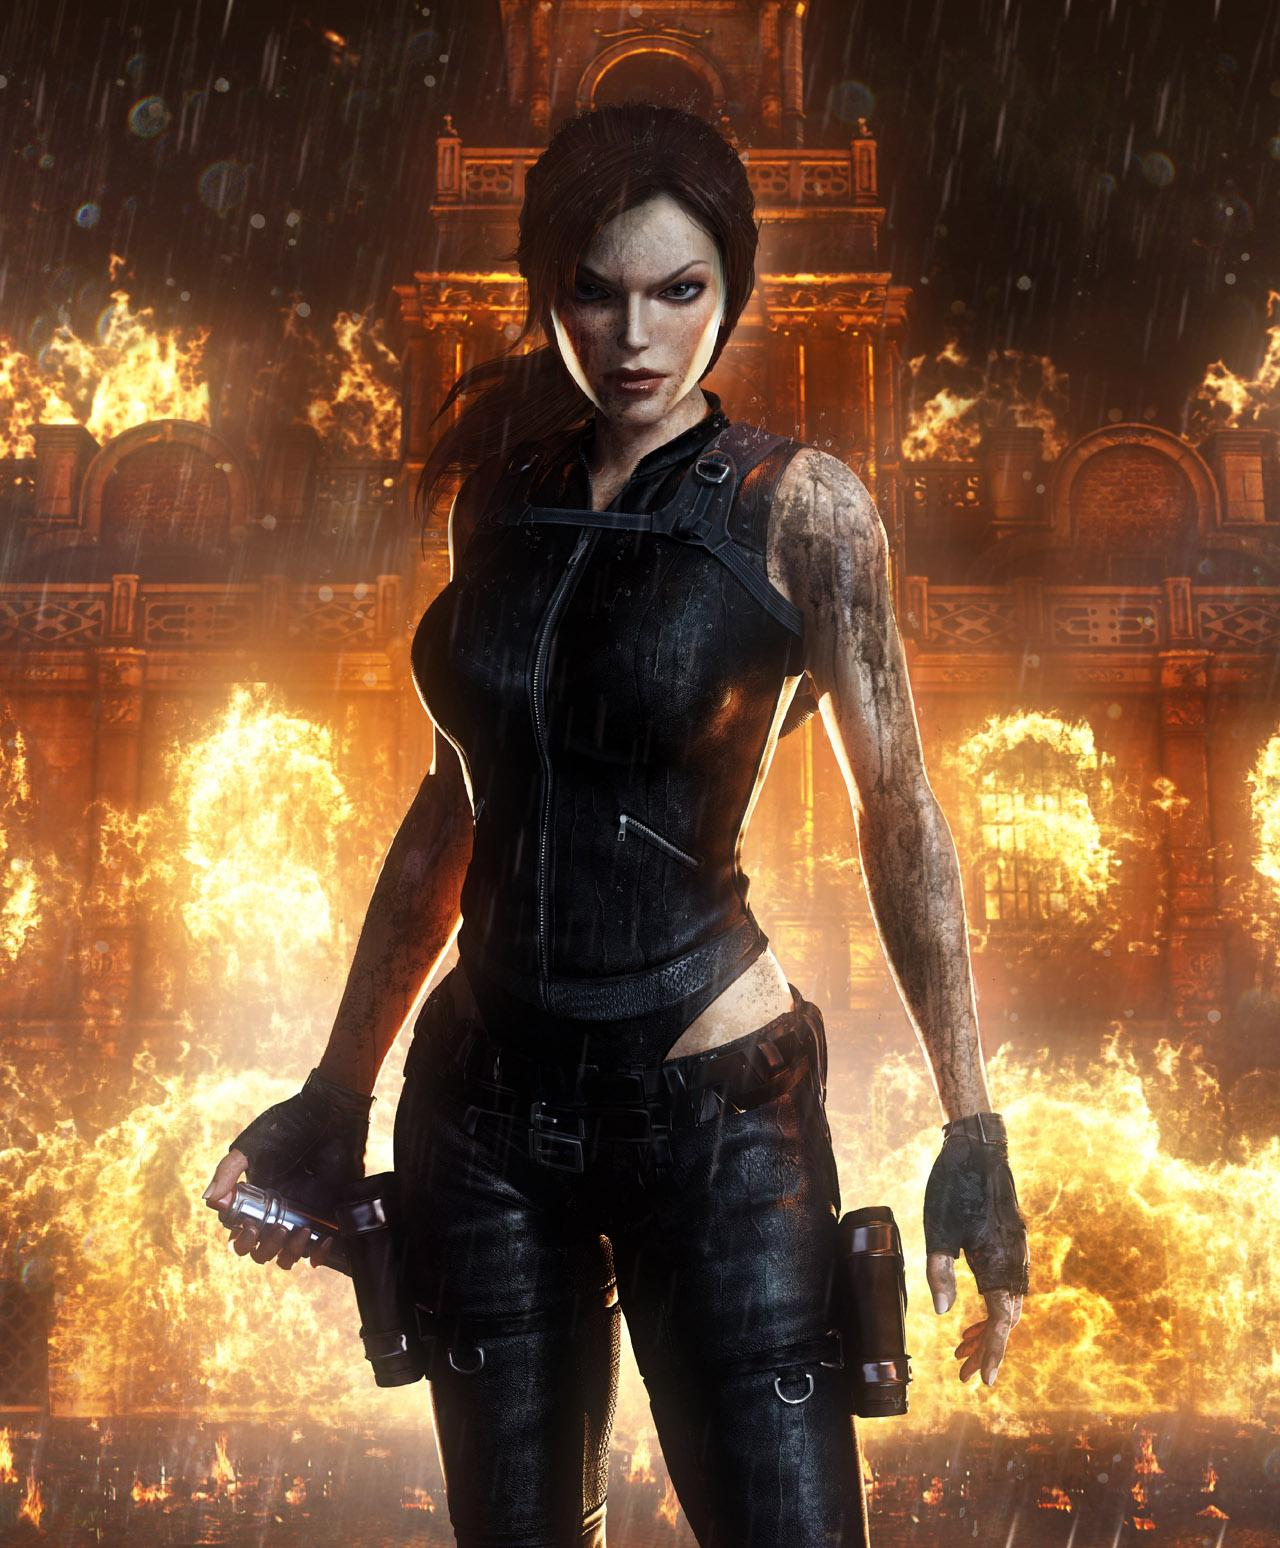 Does new Lara look Japanese? - Page 4